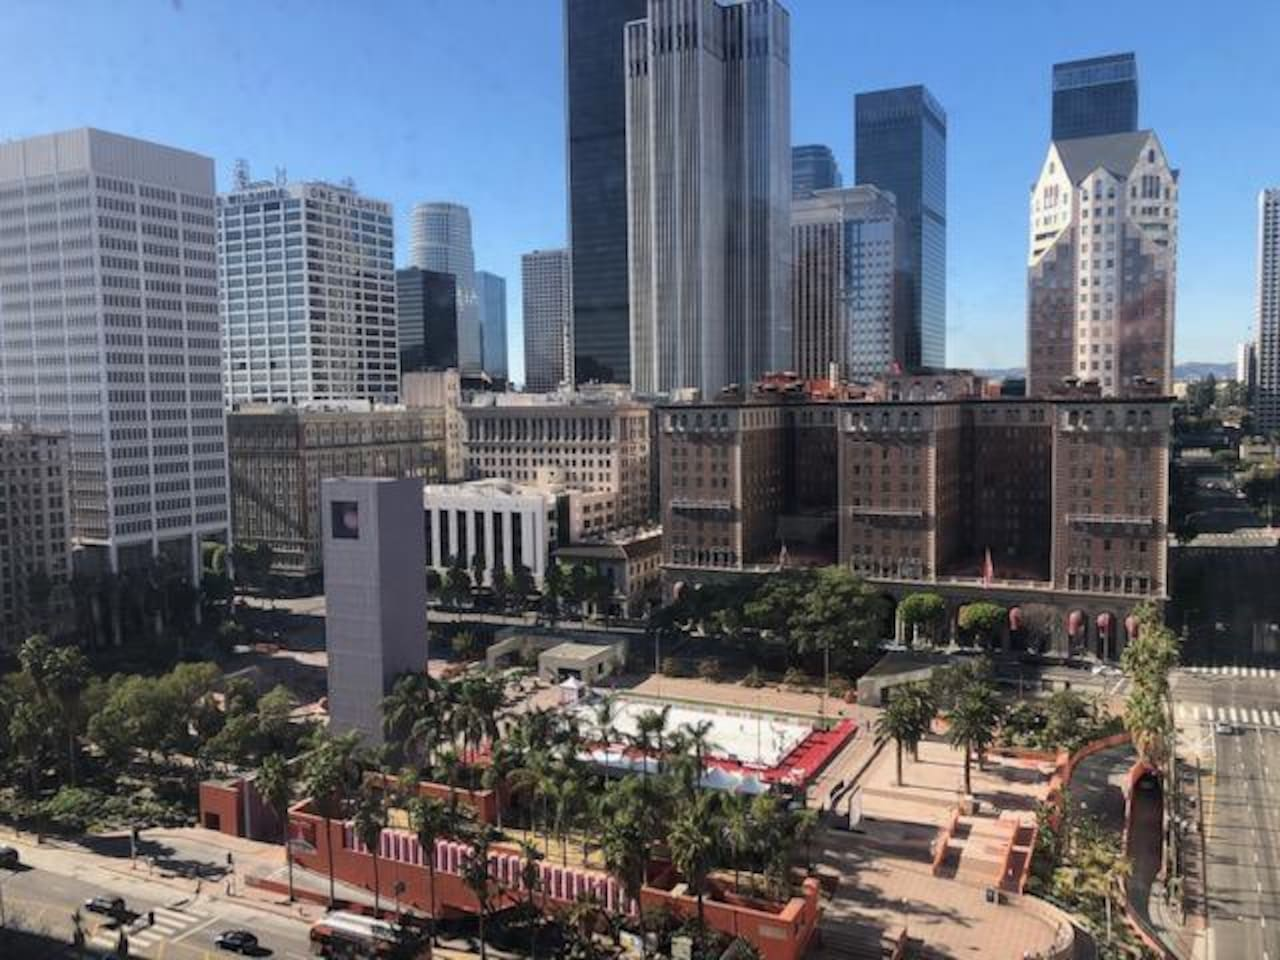 Pershing Square view from rooftop